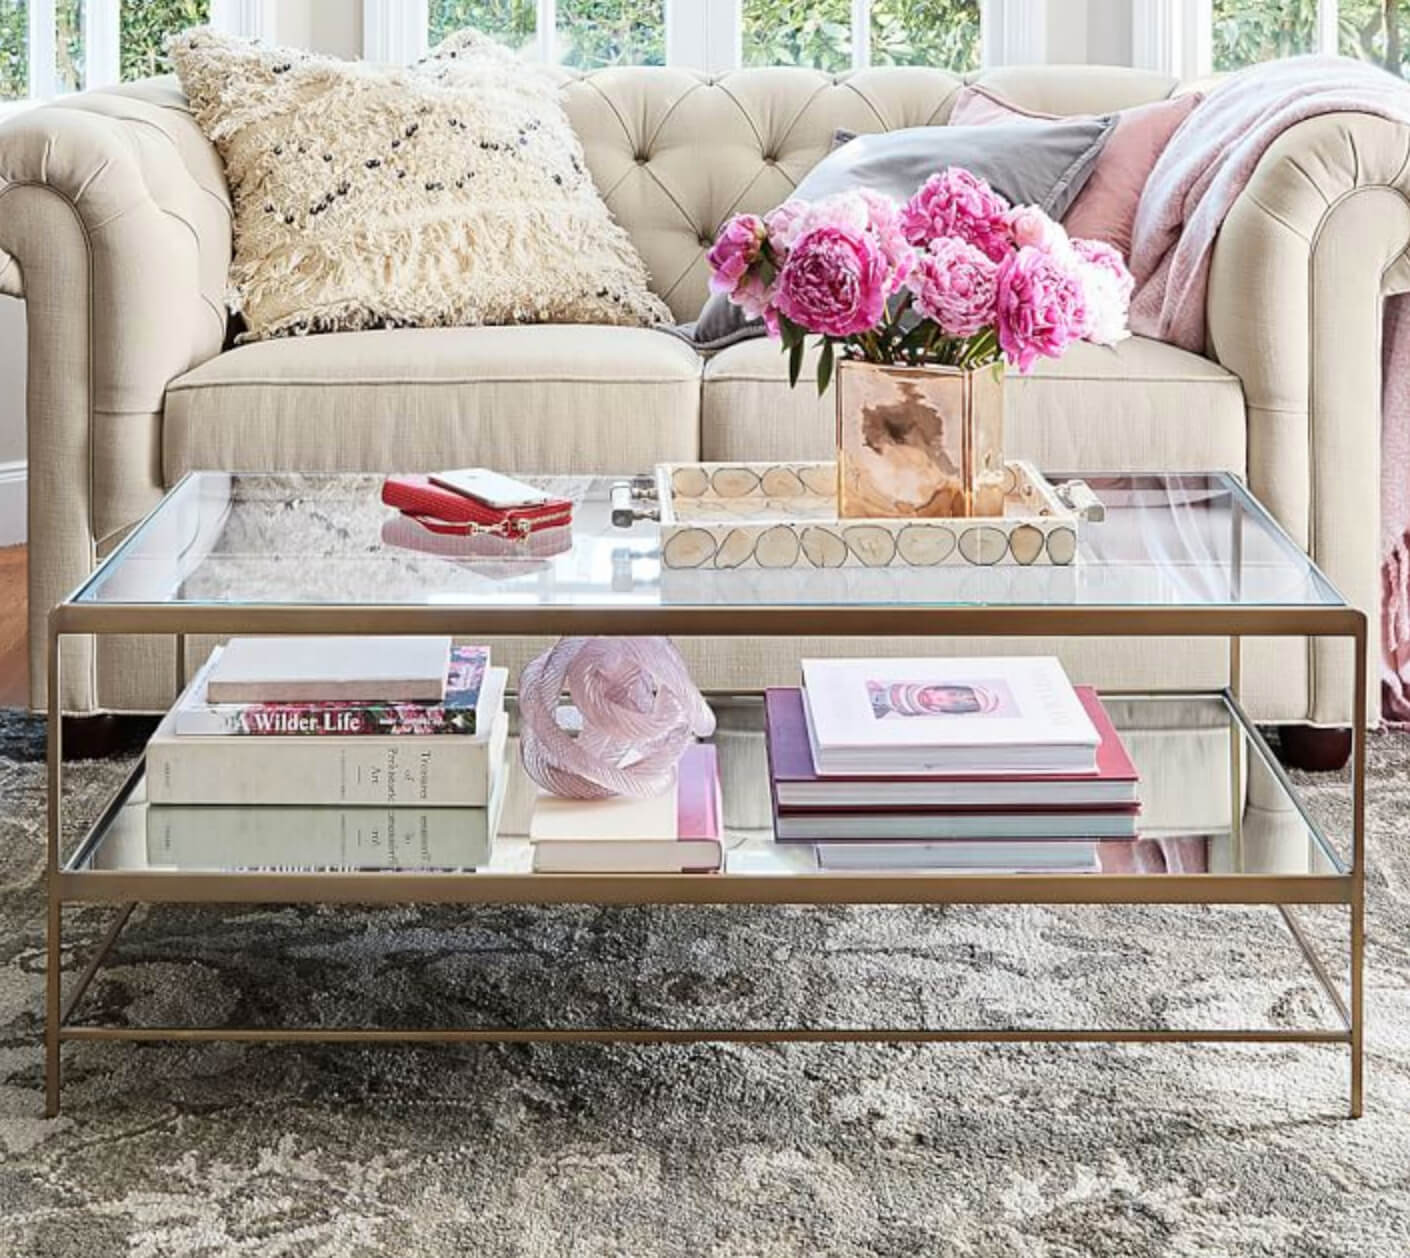 - Interior Designer Inspiration For Styling Your Coffee Table